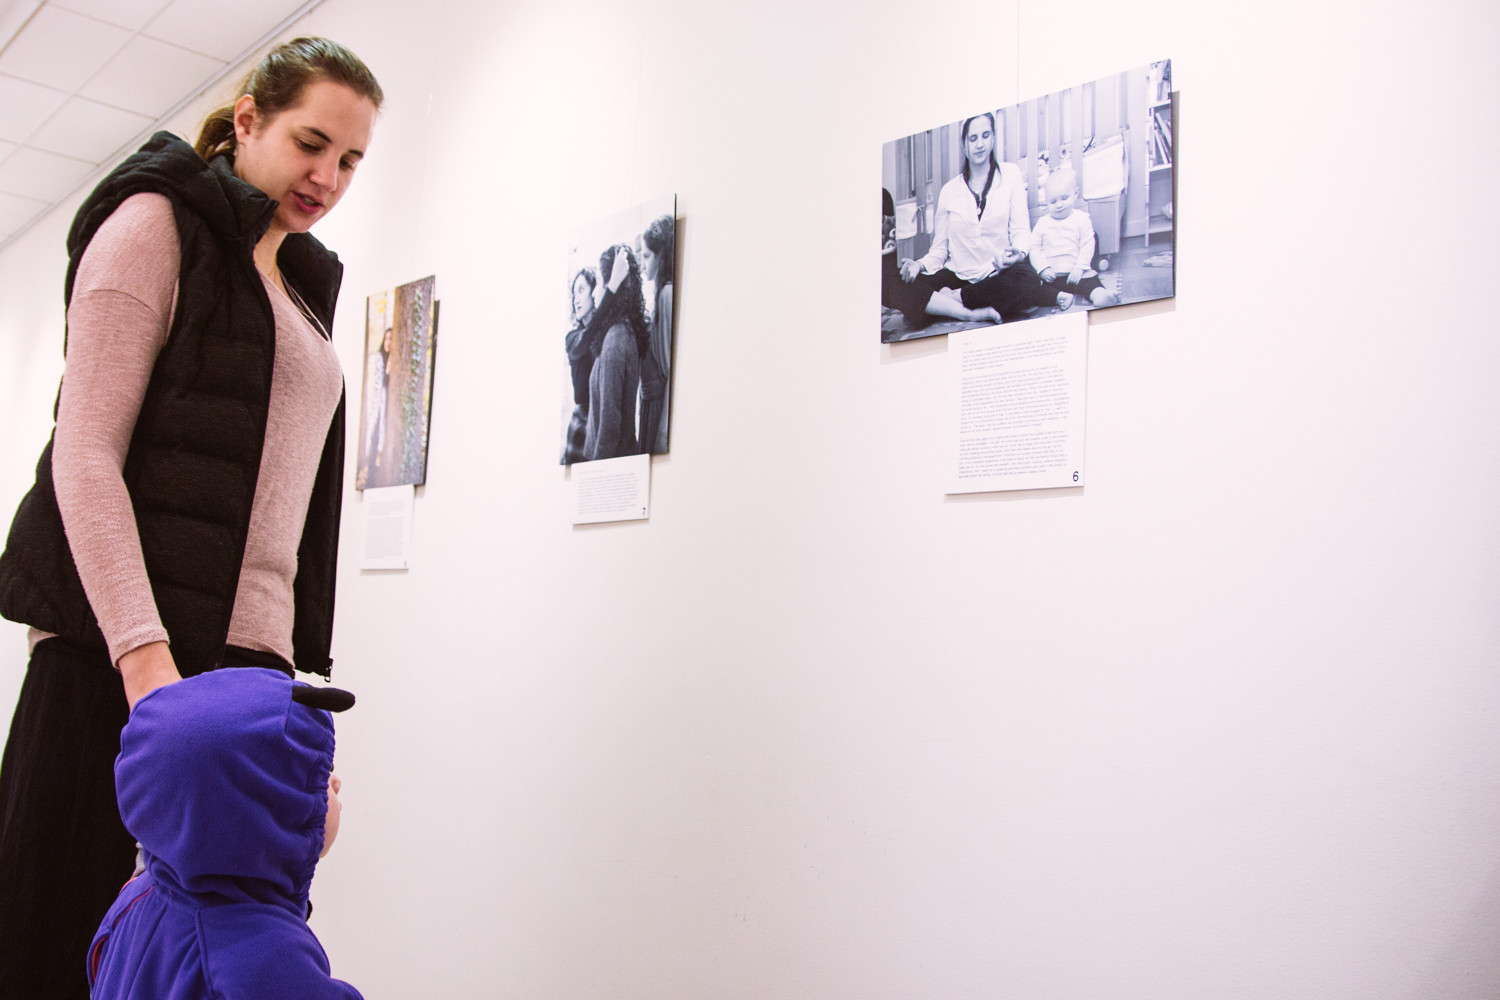 Yali-Szulanski-Weiss and her daughter Zoey both take look at a photo of themselves. It's part of 'The Embodyment of Jewish Femininity,' a photo project created by Brooklyn native Aviva Braun, a social worker specializing in eating disorders and body image issues.